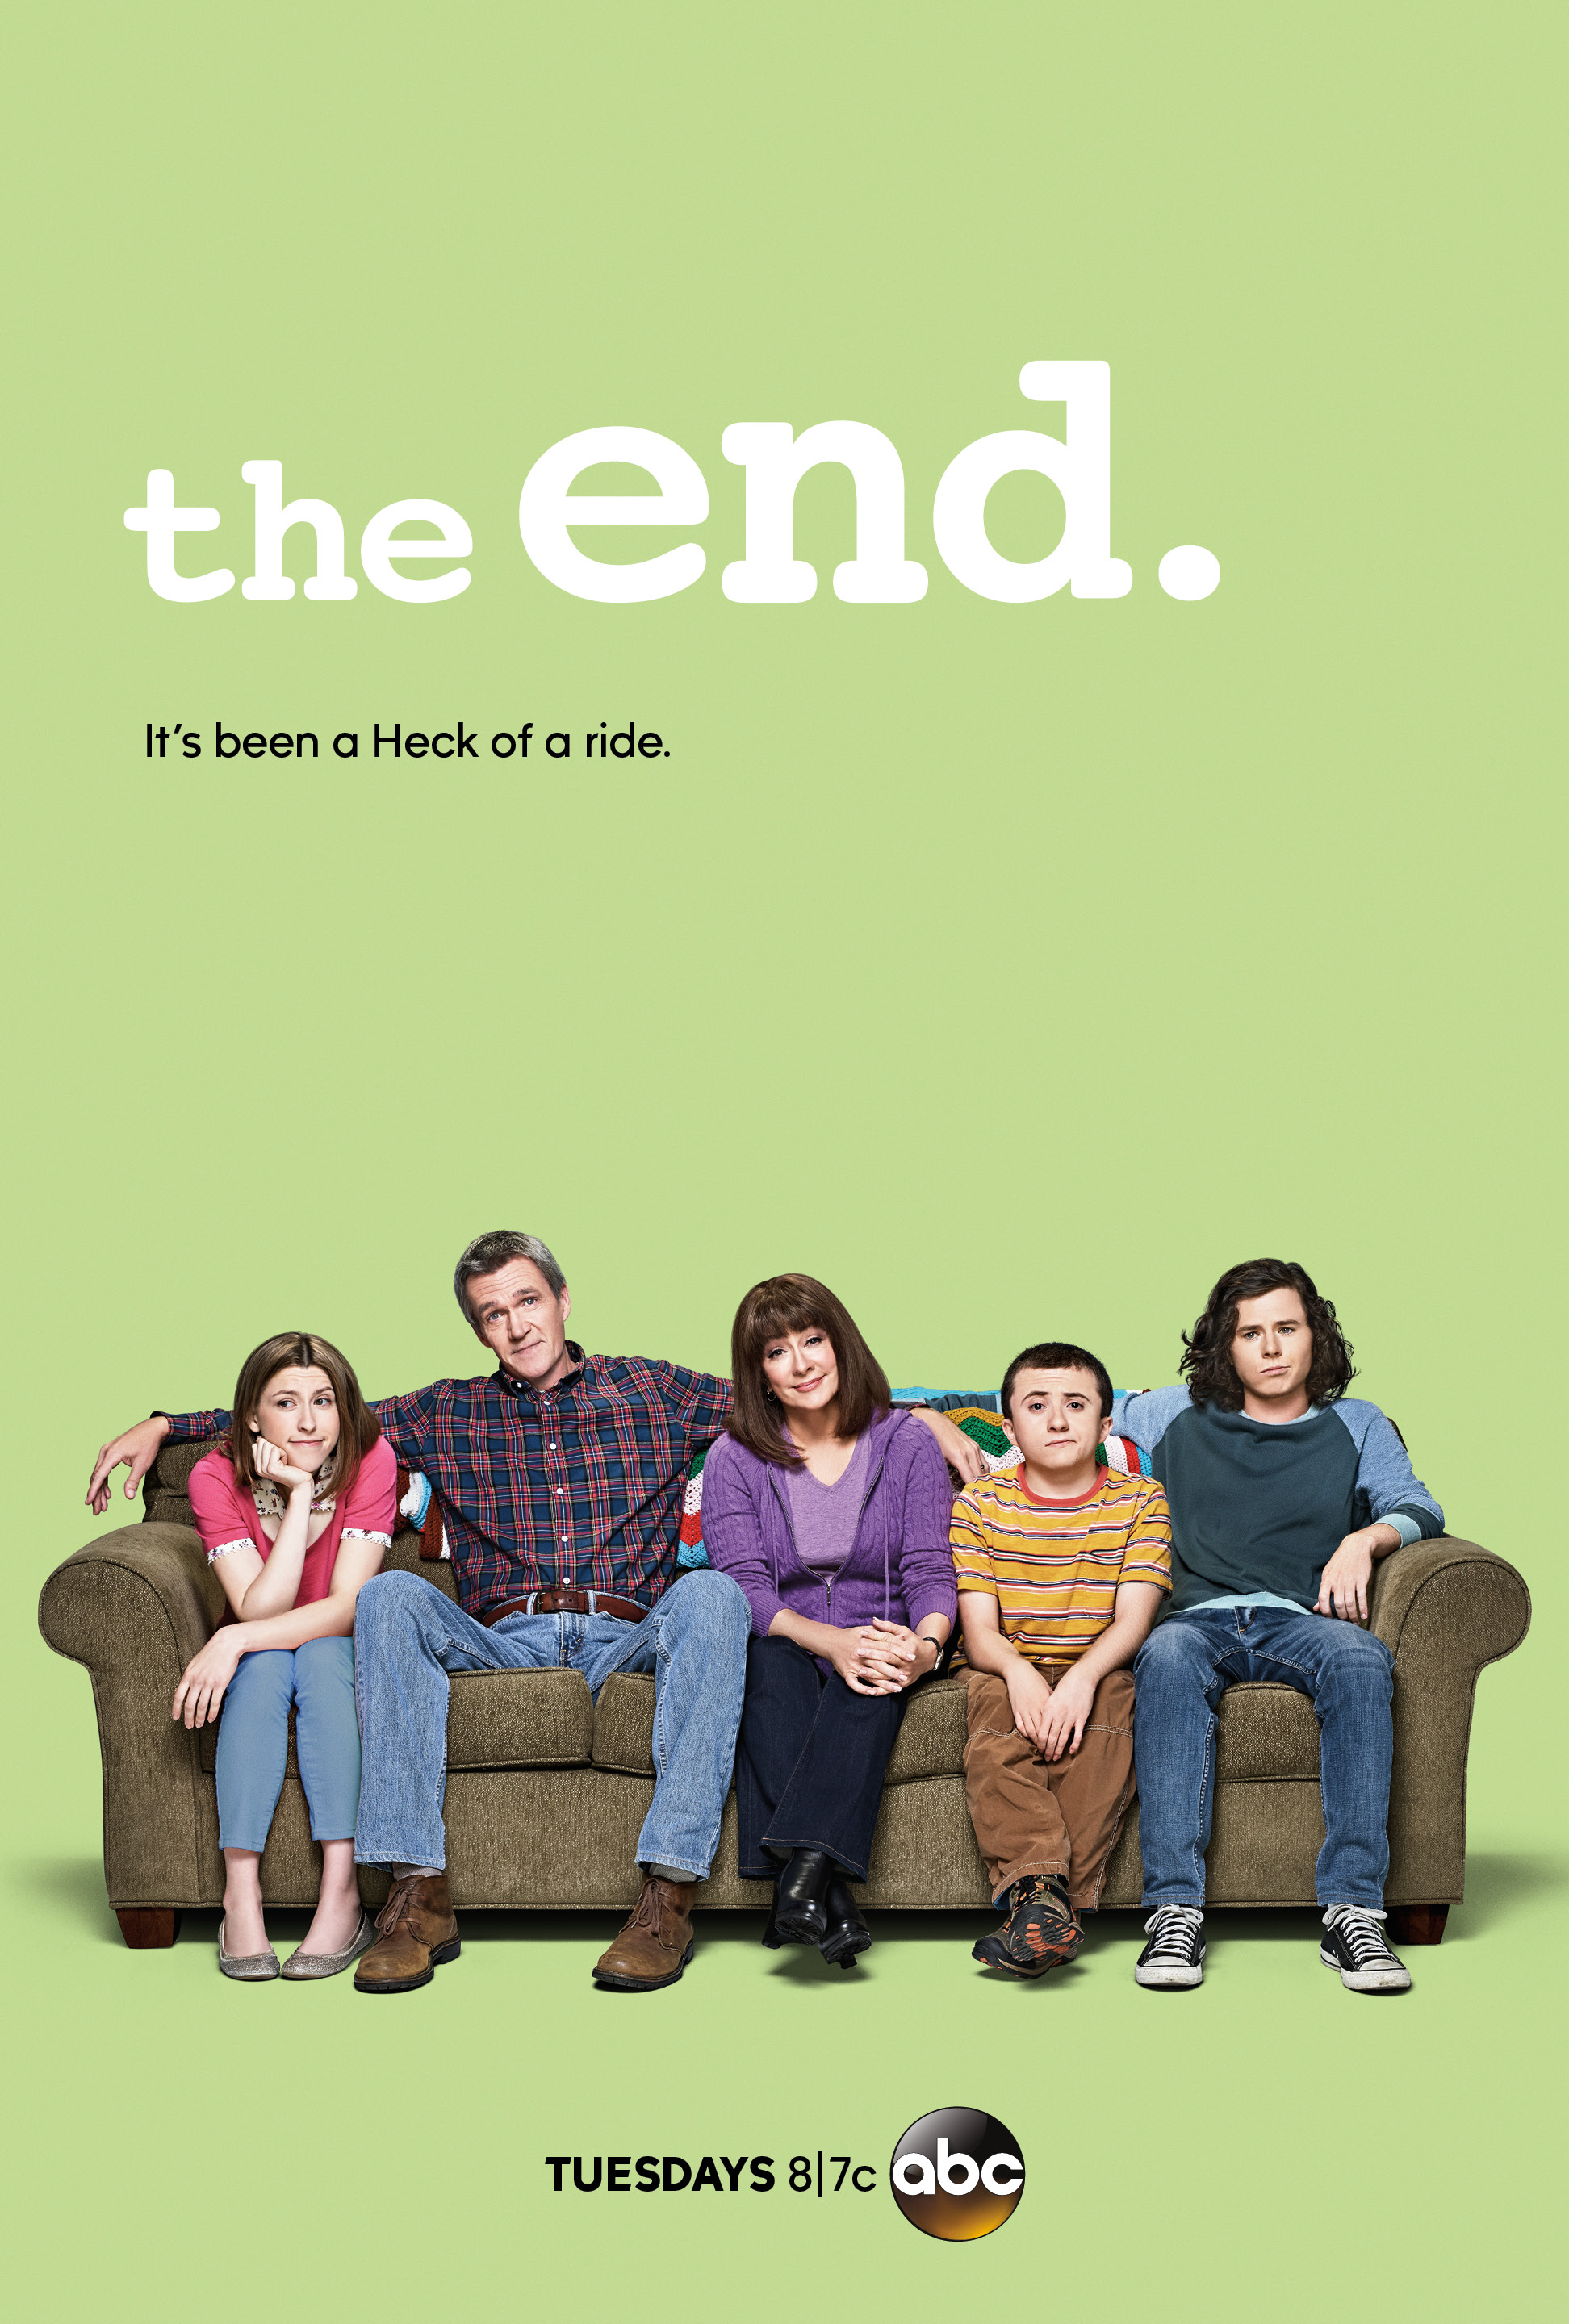 The christmas gift movie 2019 cast of the middle